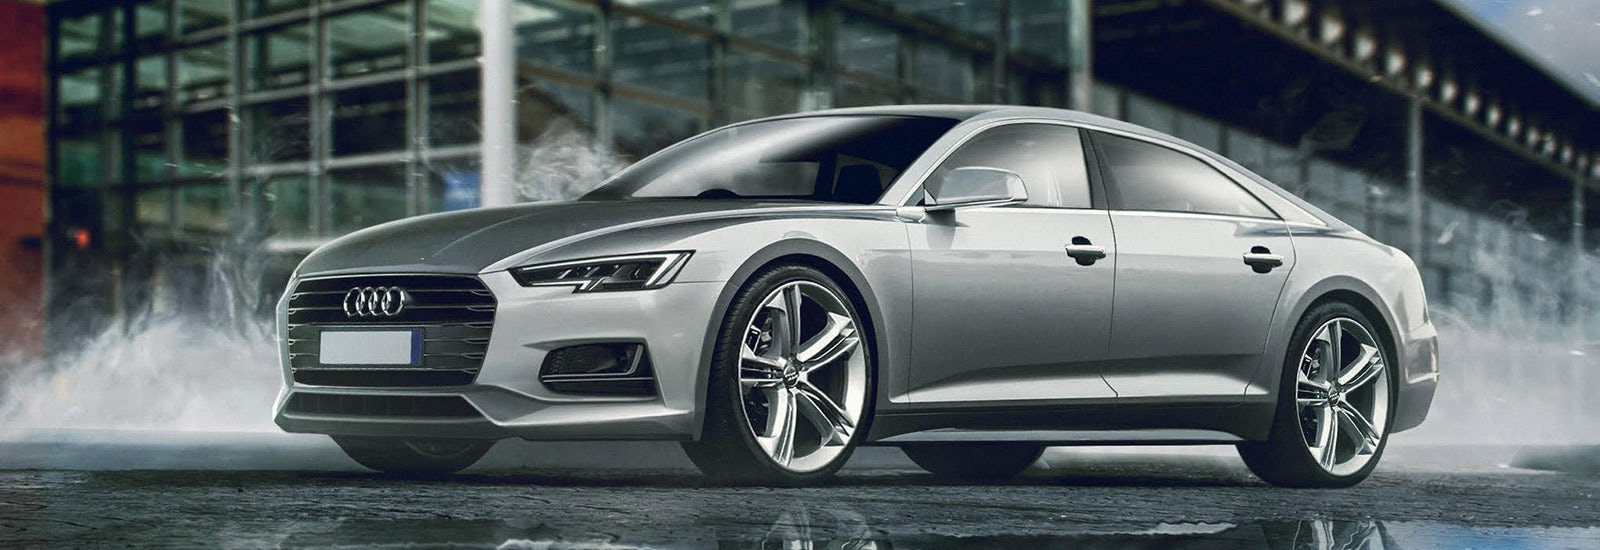 New Audi A Price Specs And Release Date Carwow - Audi cost